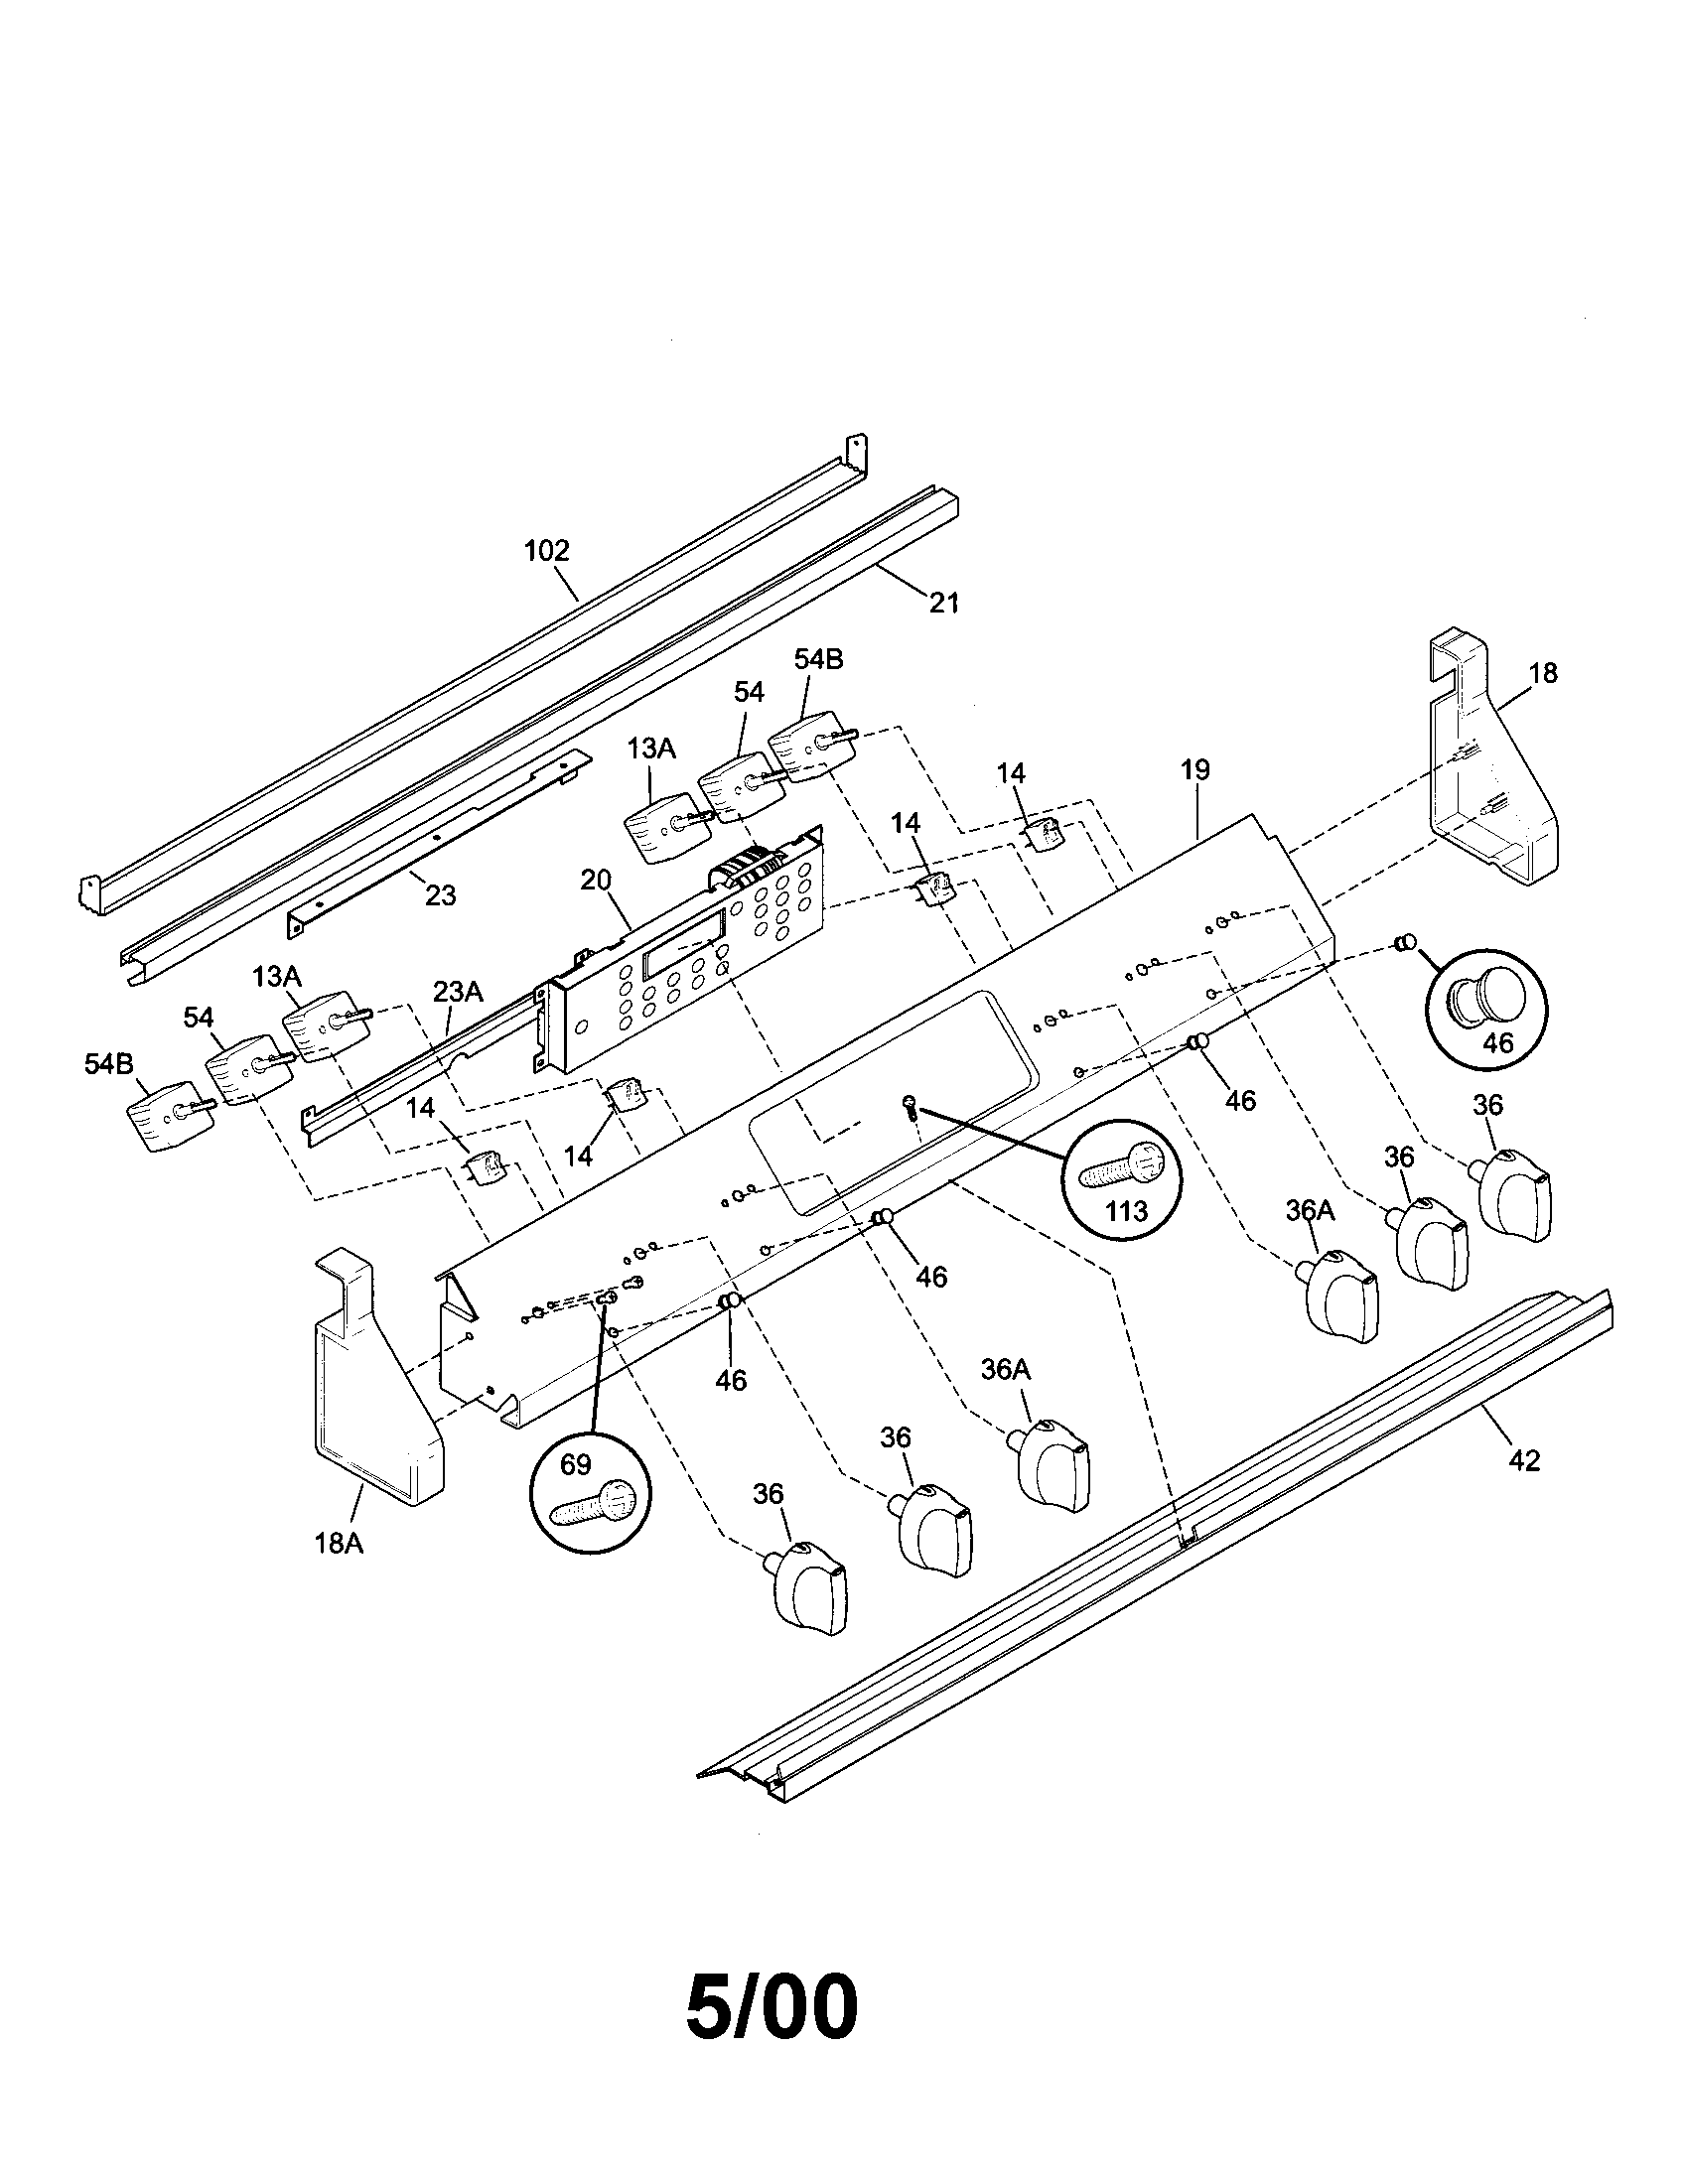 79046802992 elite electric slide-in range backguard parts diagram